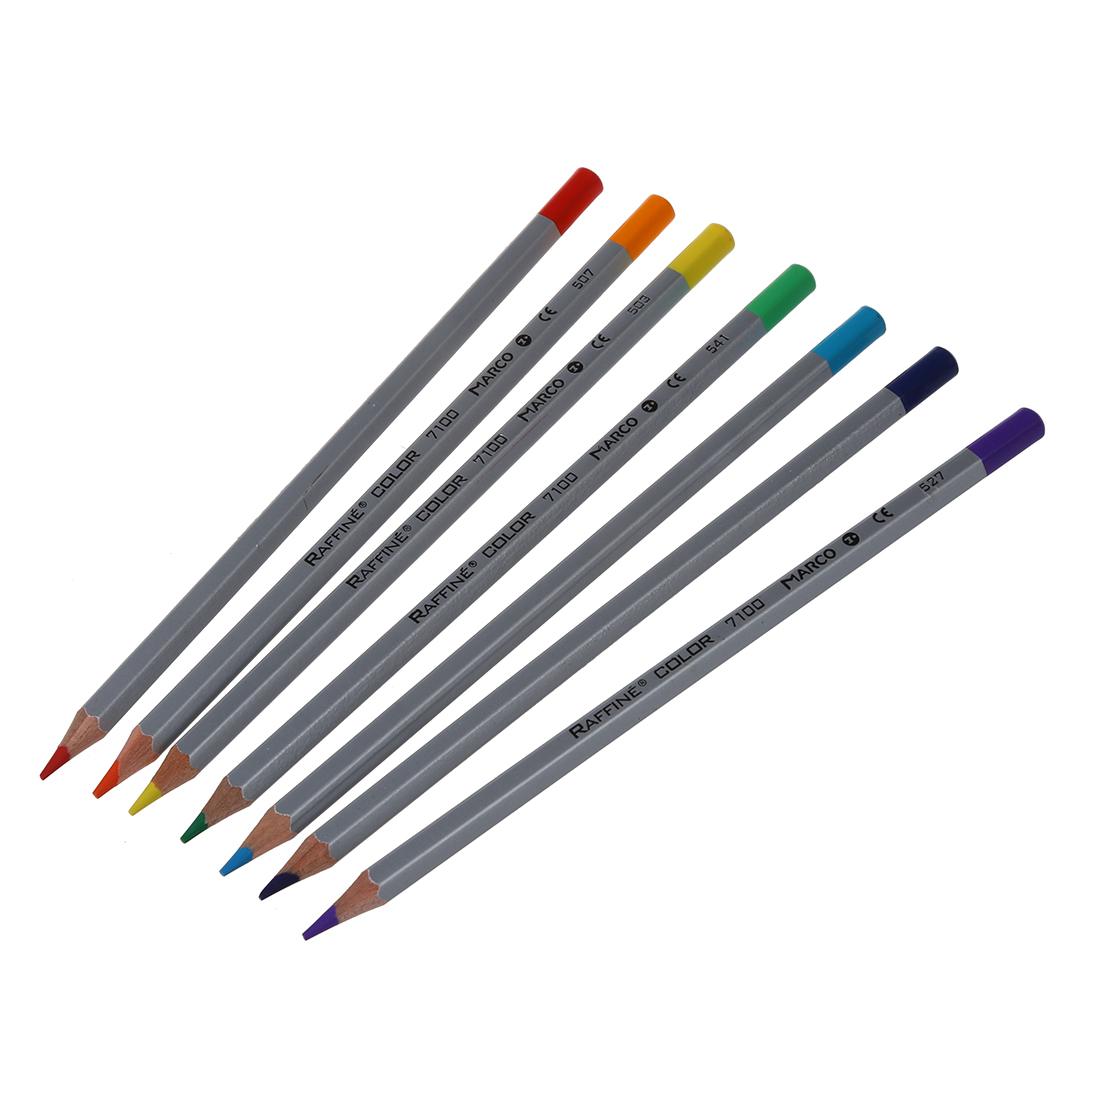 Marco Fine 72Color Art Drawing Oil Base Non-toxic Pencils Set For Artist SketchMarco Fine 72Color Art Drawing Oil Base Non-toxic Pencils Set For Artist Sketch